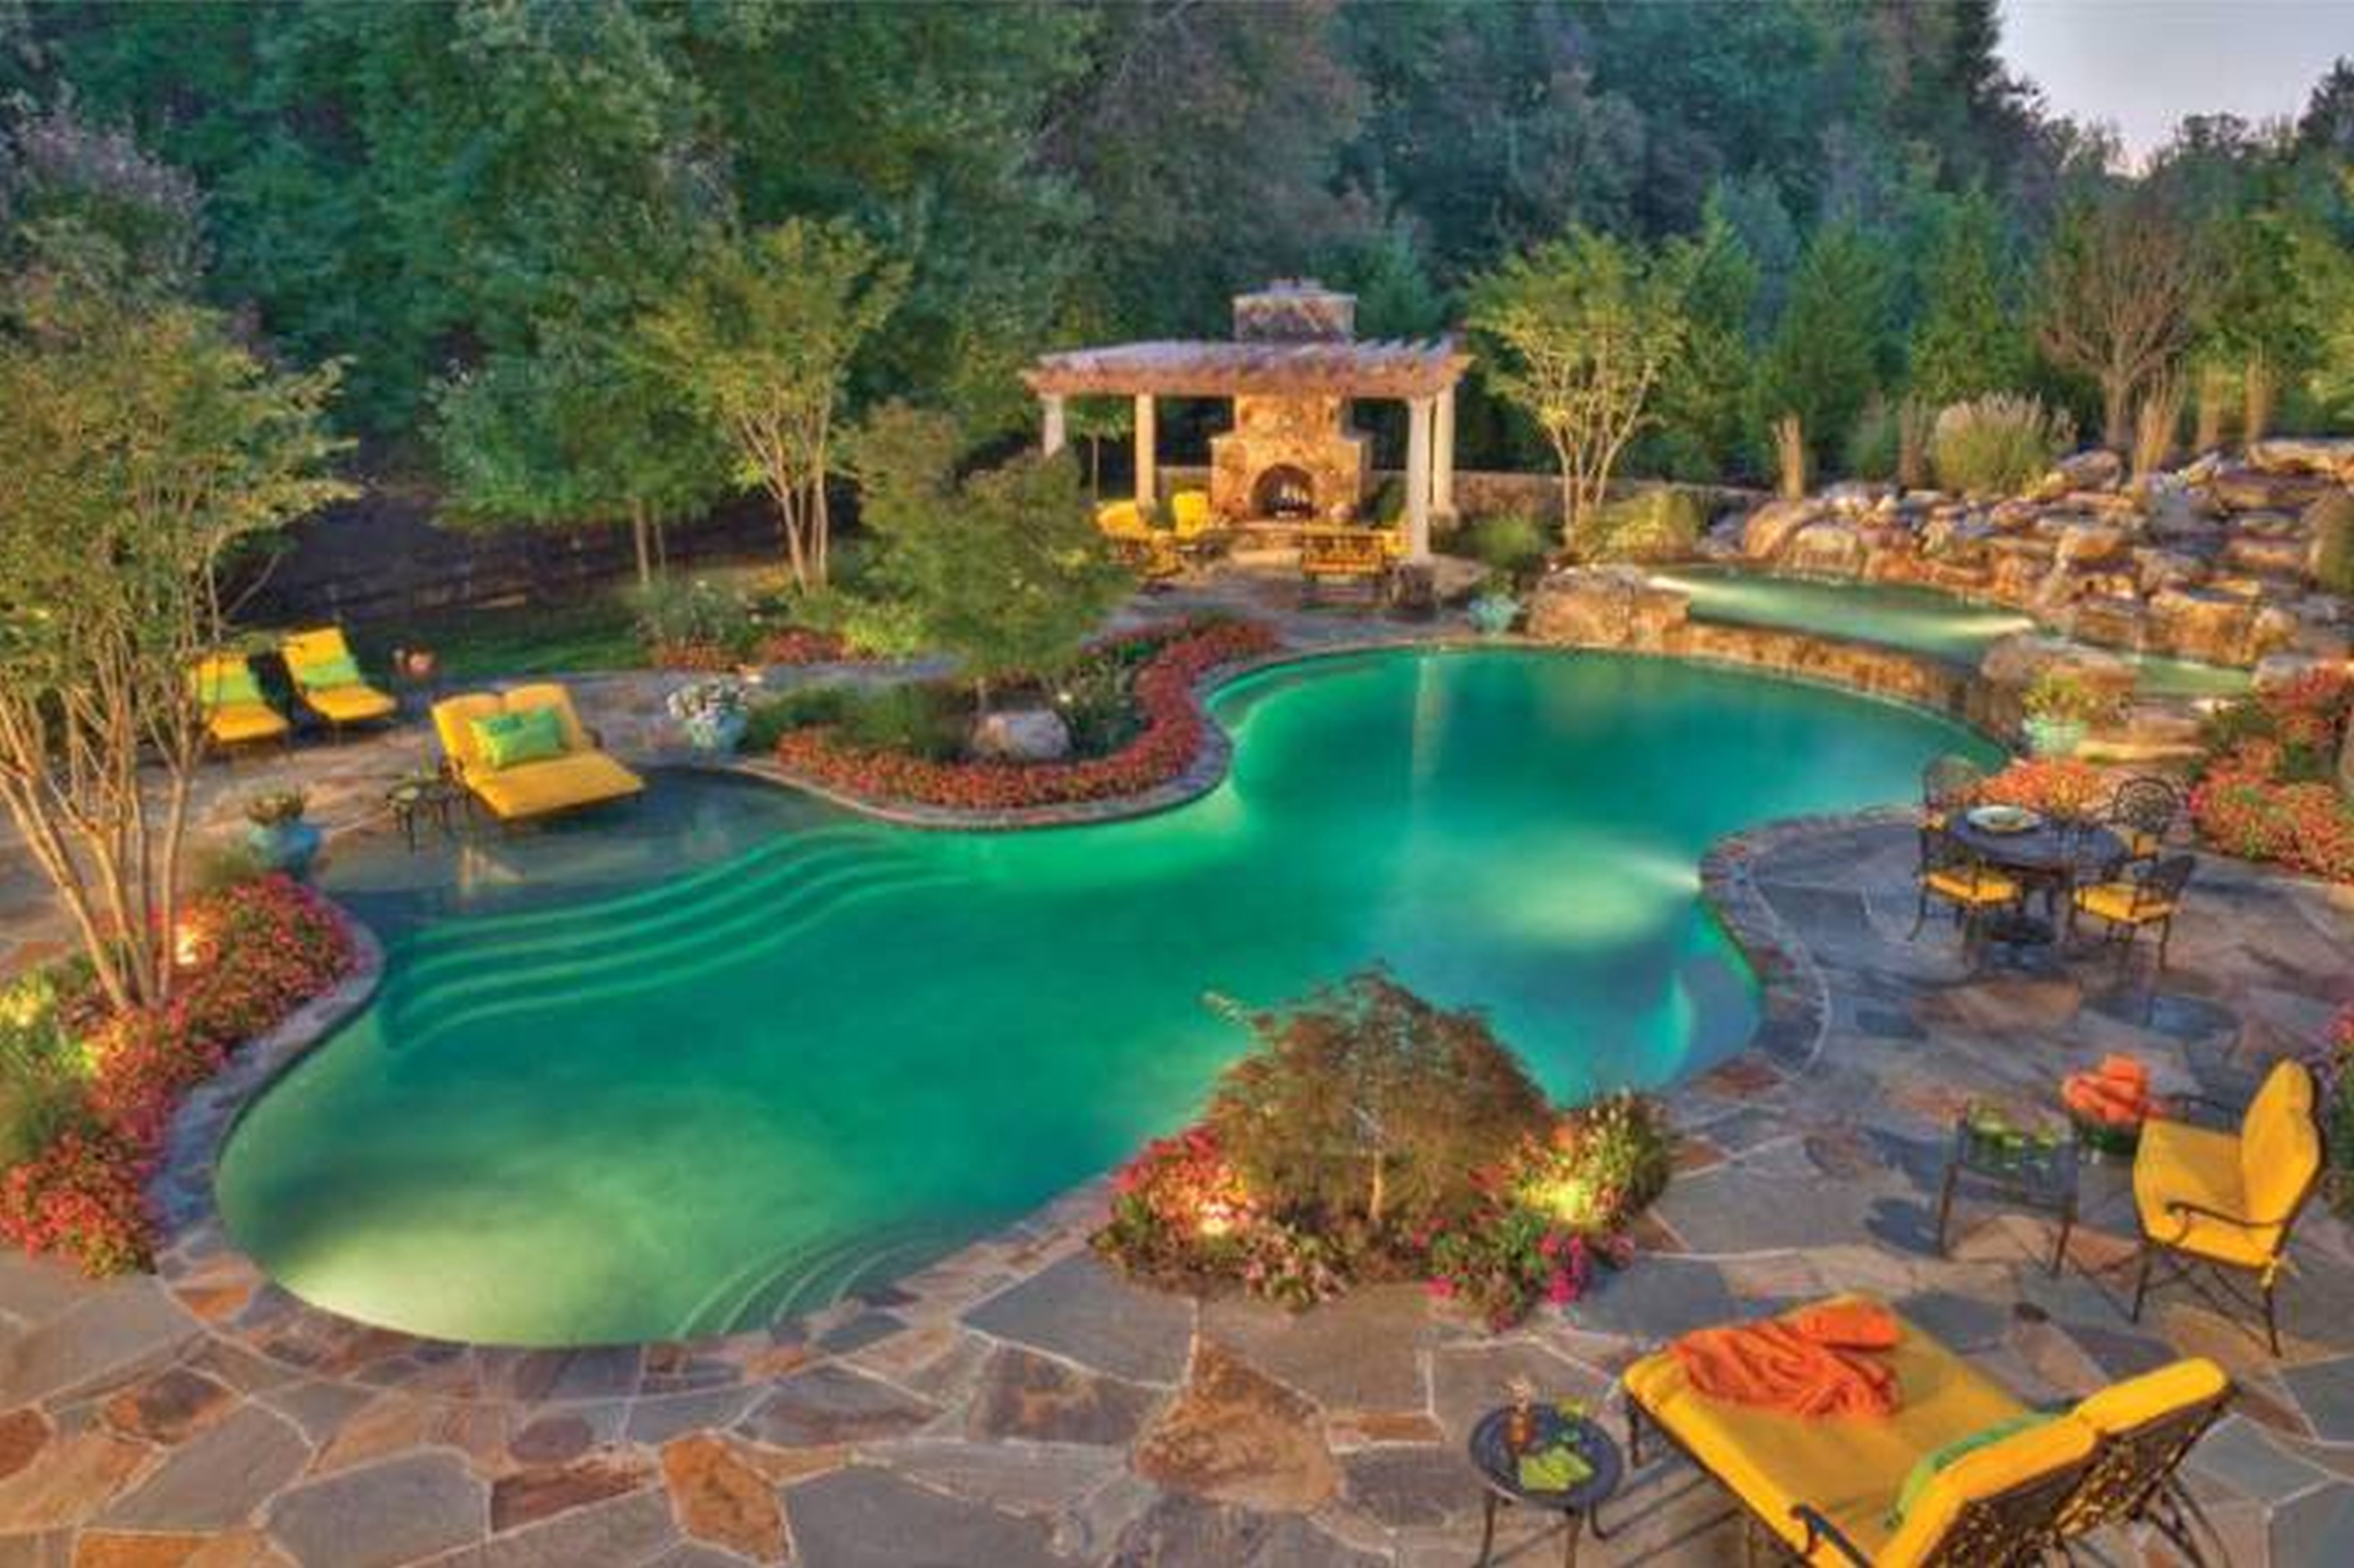 Swimming pool designs and landscaping landscaping Great pool design ideas